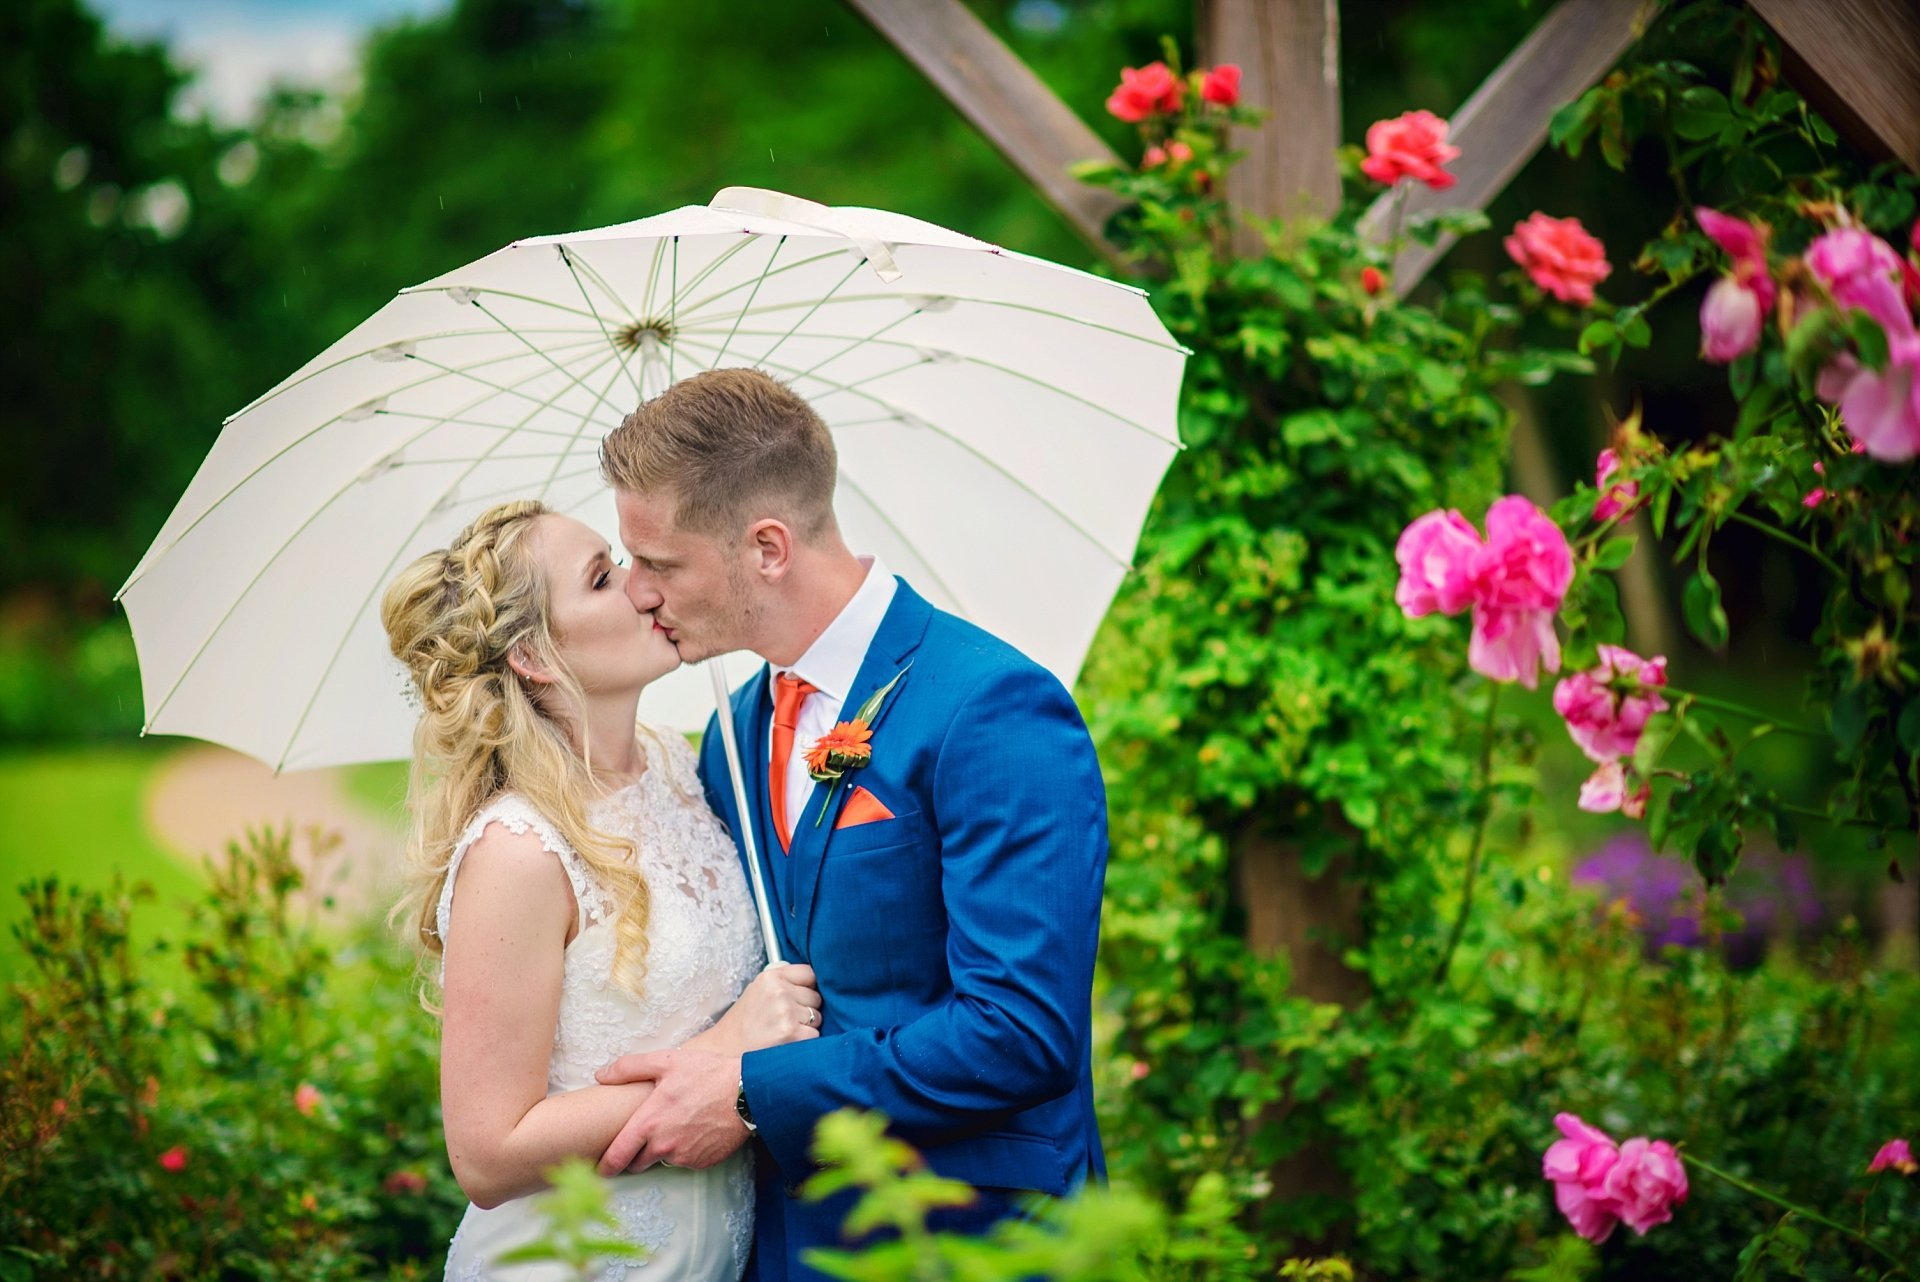 richmon park wedding photographer